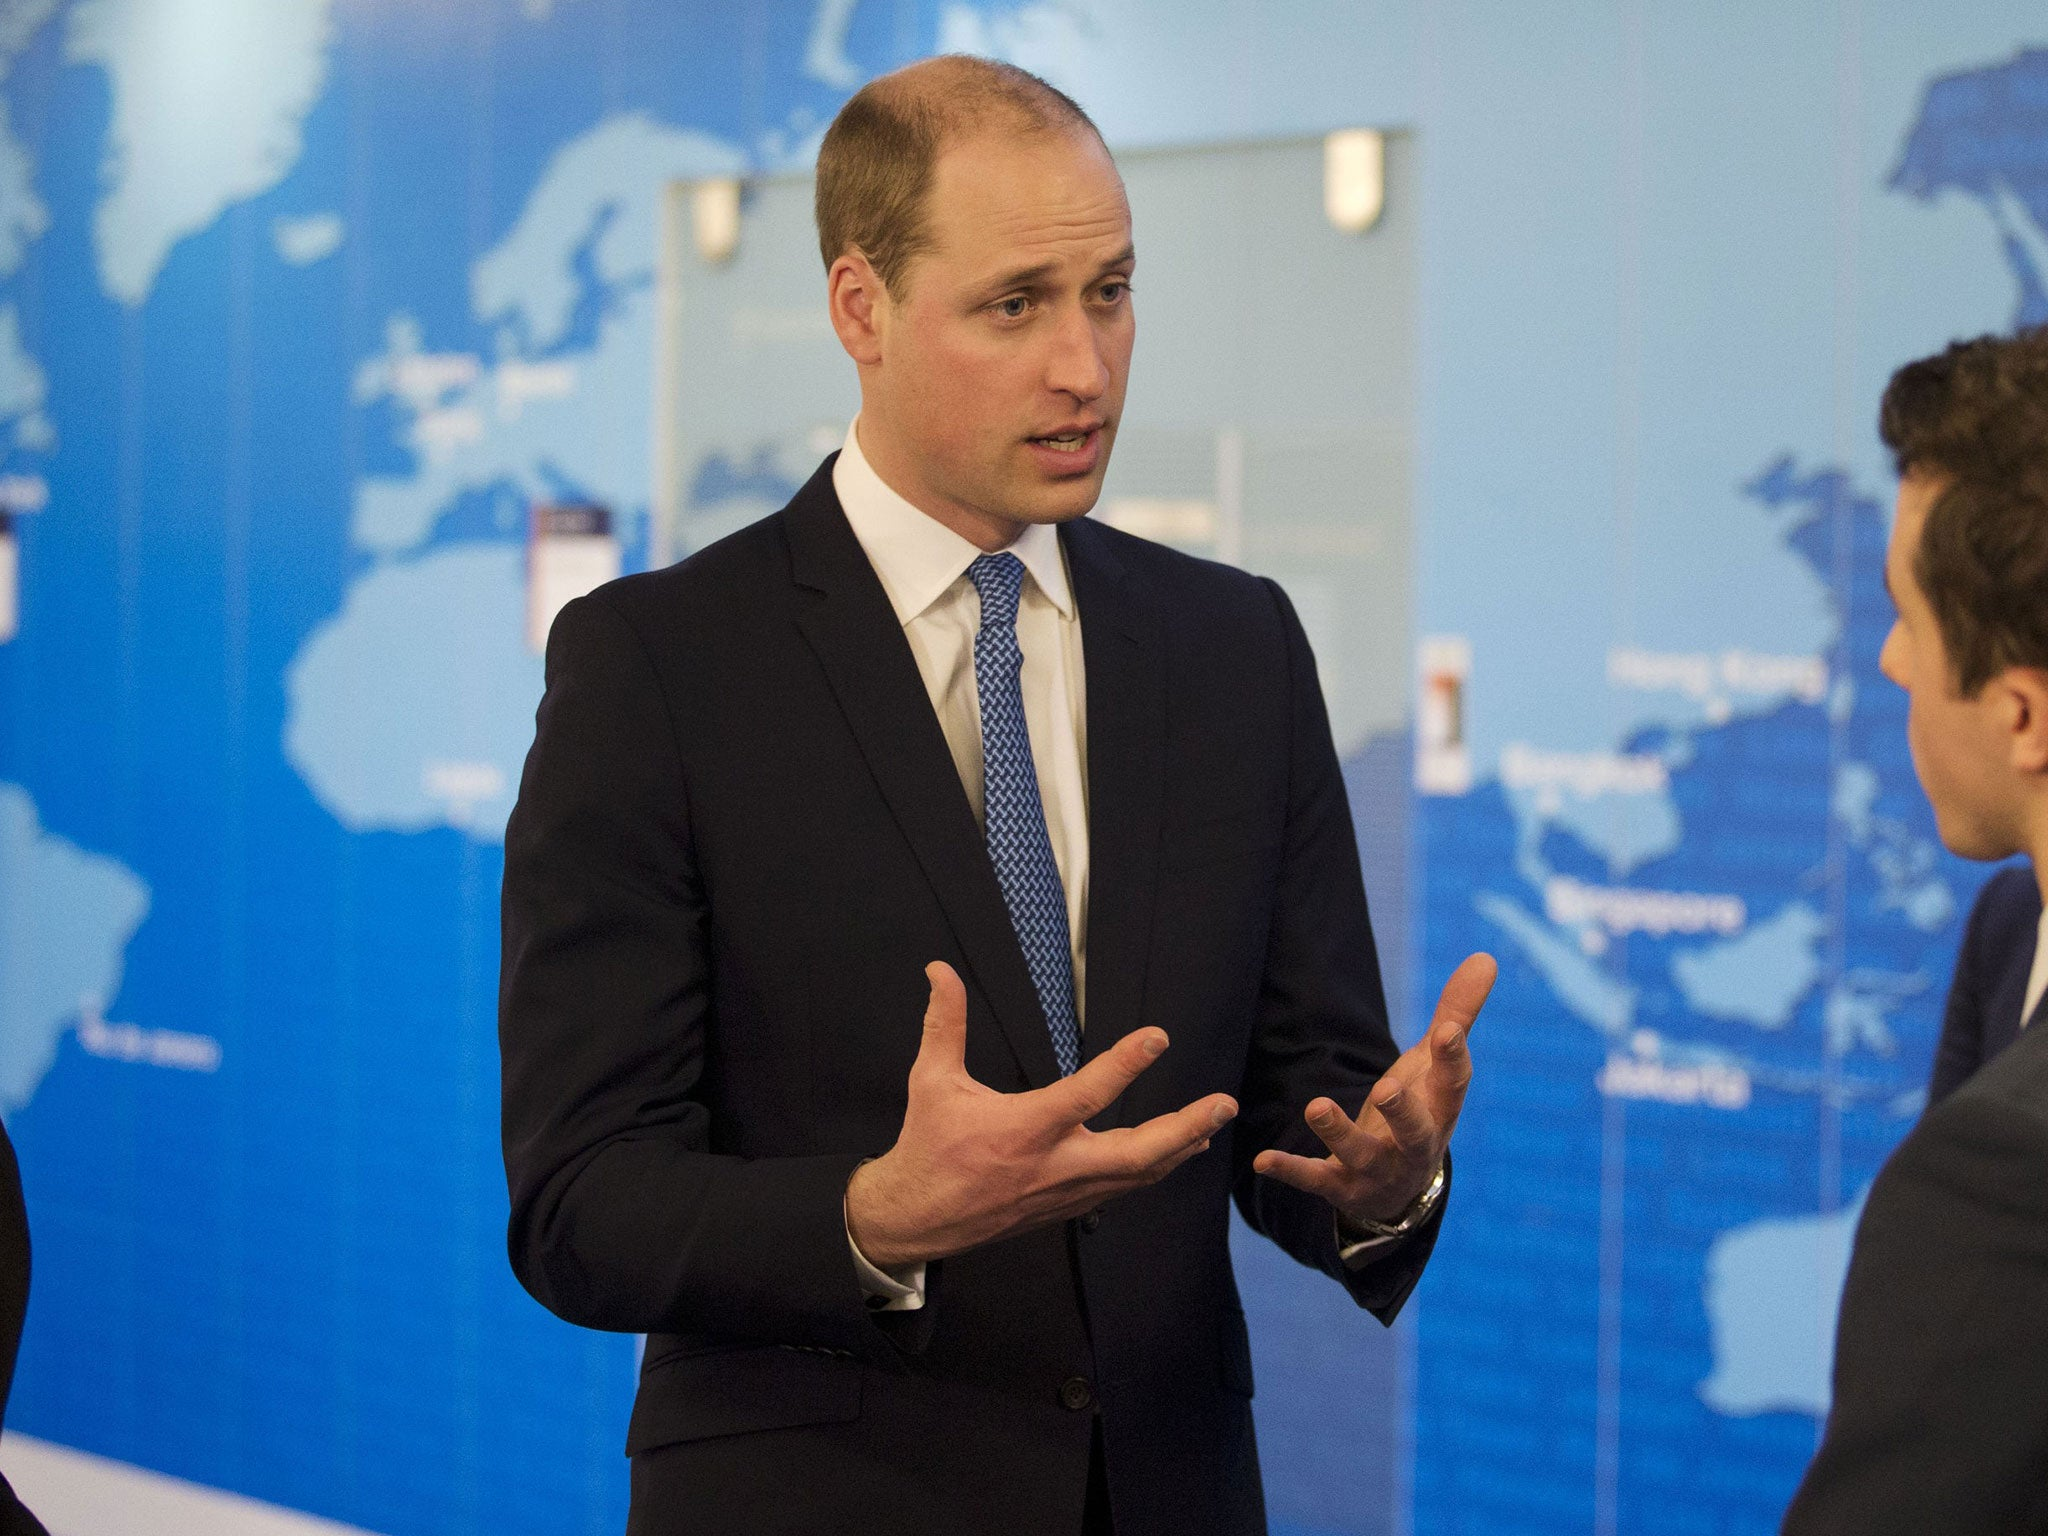 Prince william criticised for claiming trophy hunting can be justified the independent